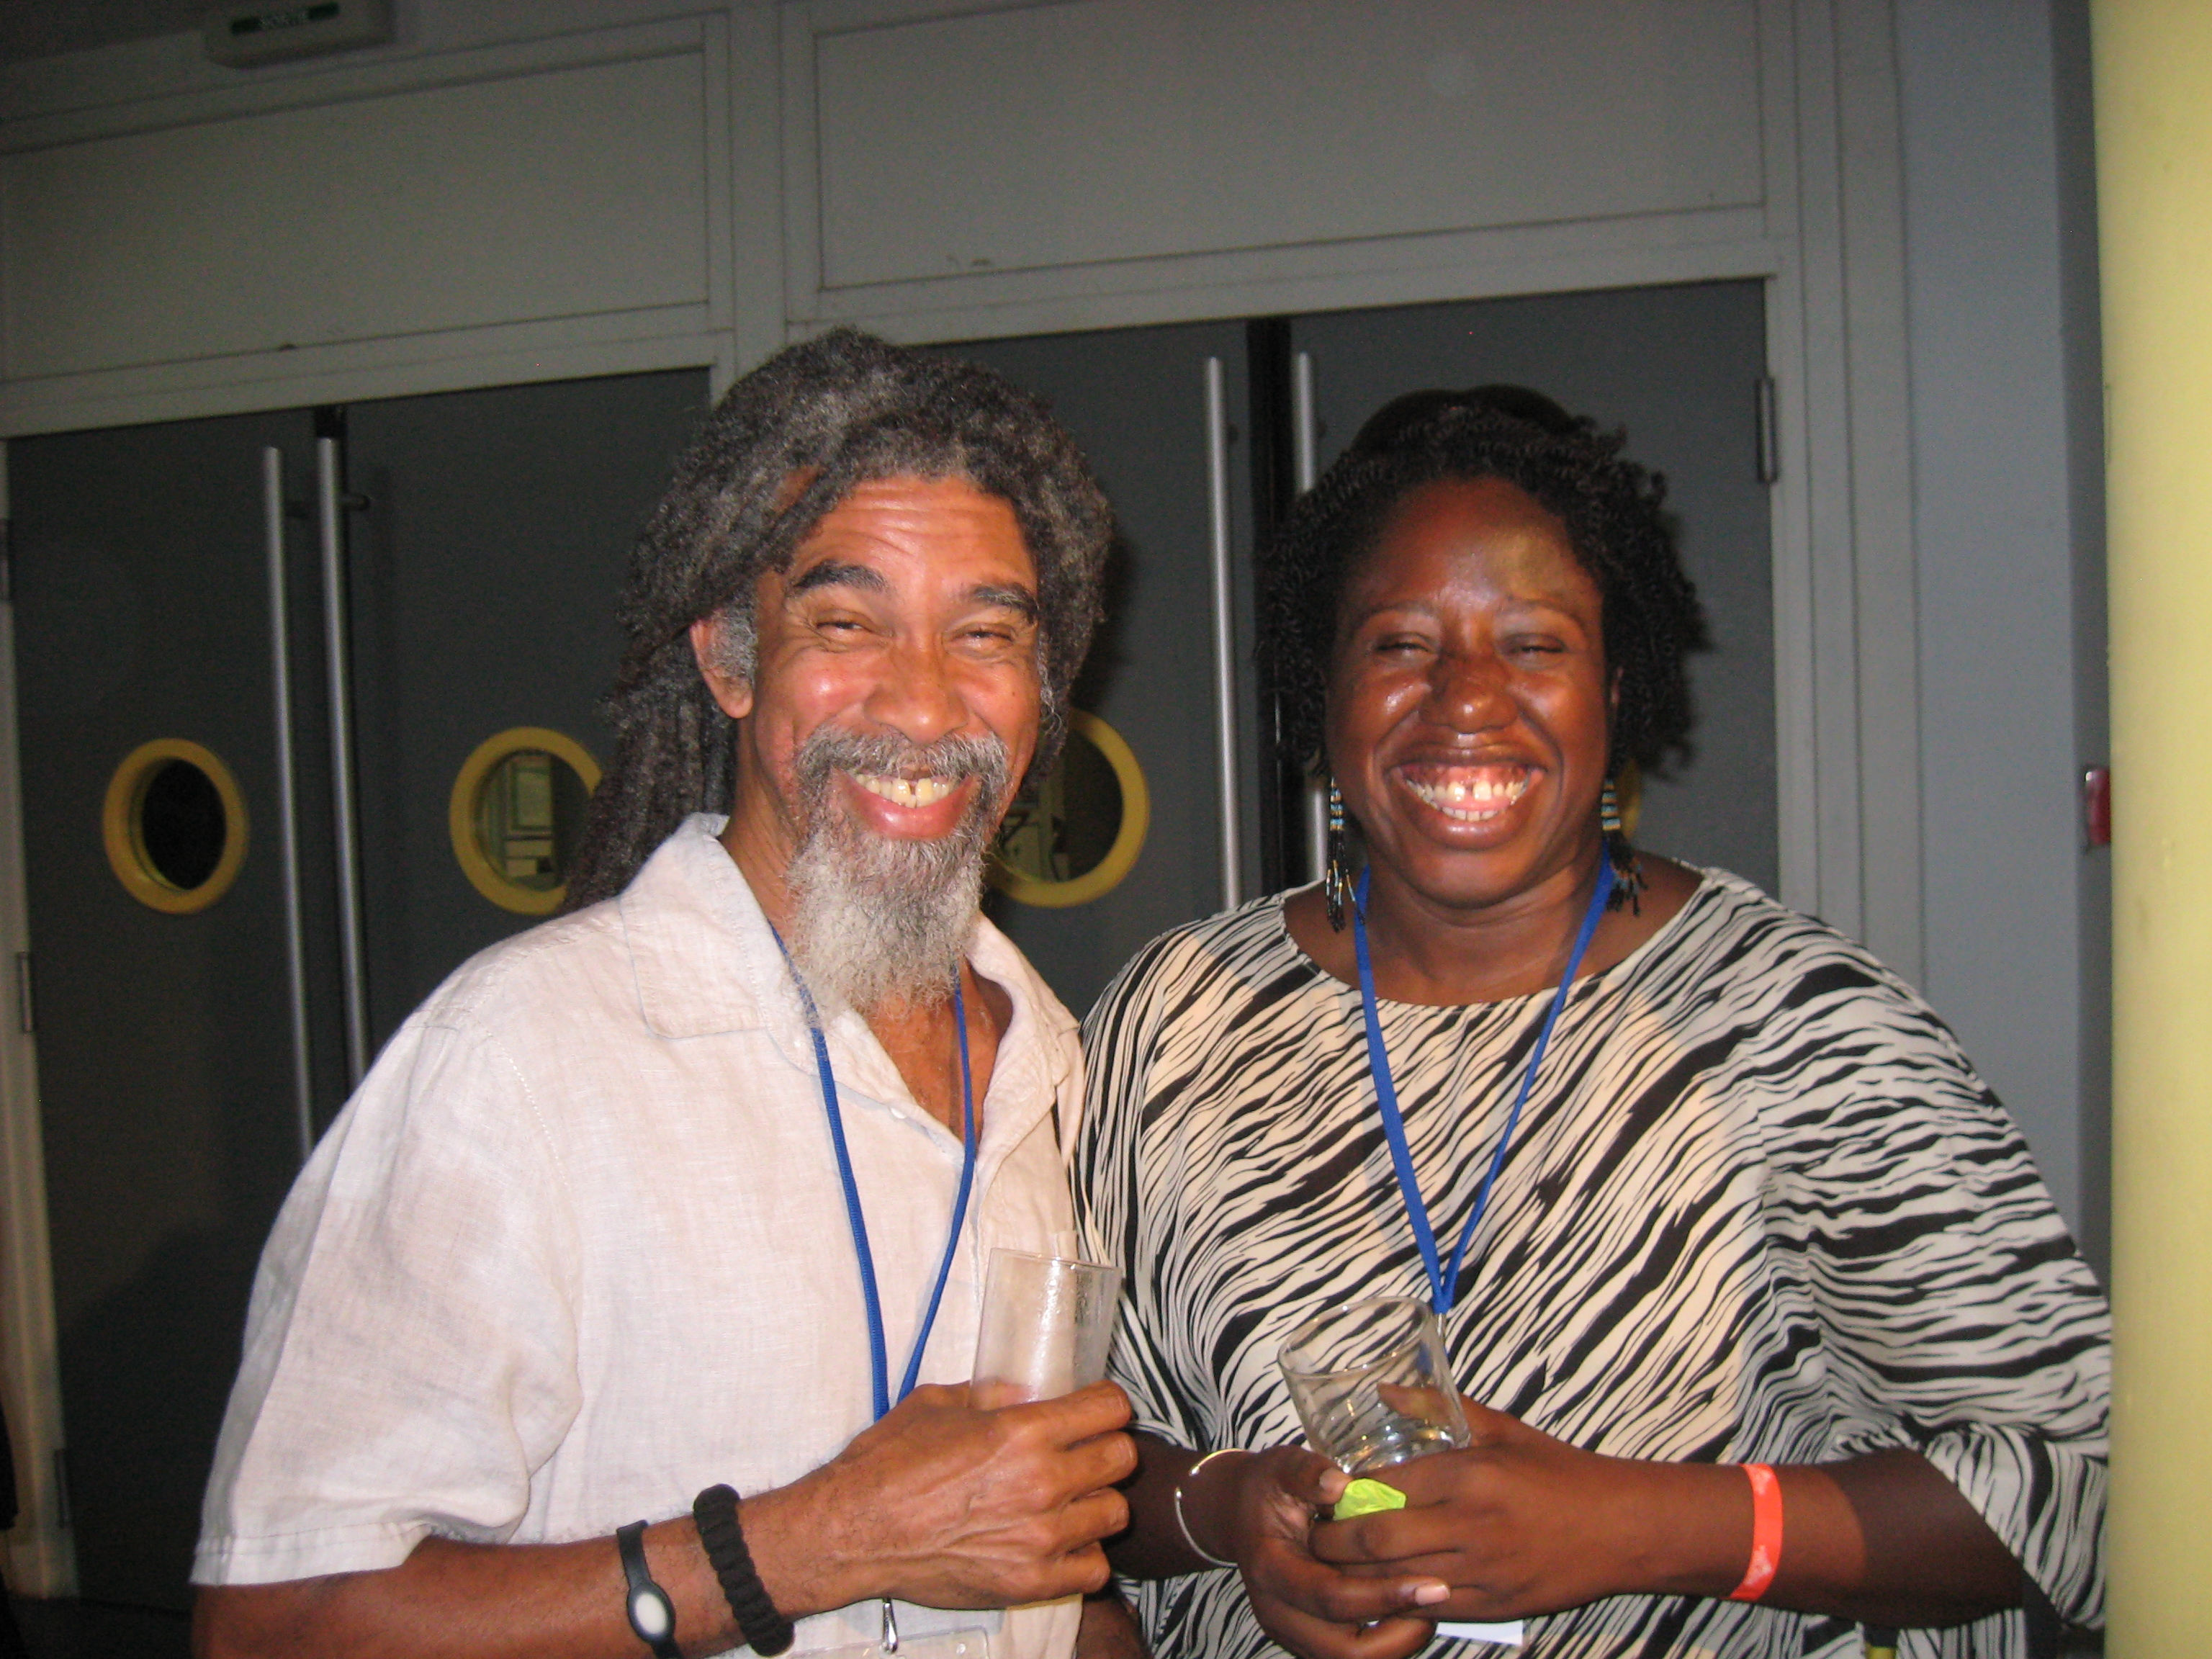 So many laughs with St. Lucian poet and playwright Kendel Hippolyte at the Caribbean Congress of Writers in Guadeloupe (2013).